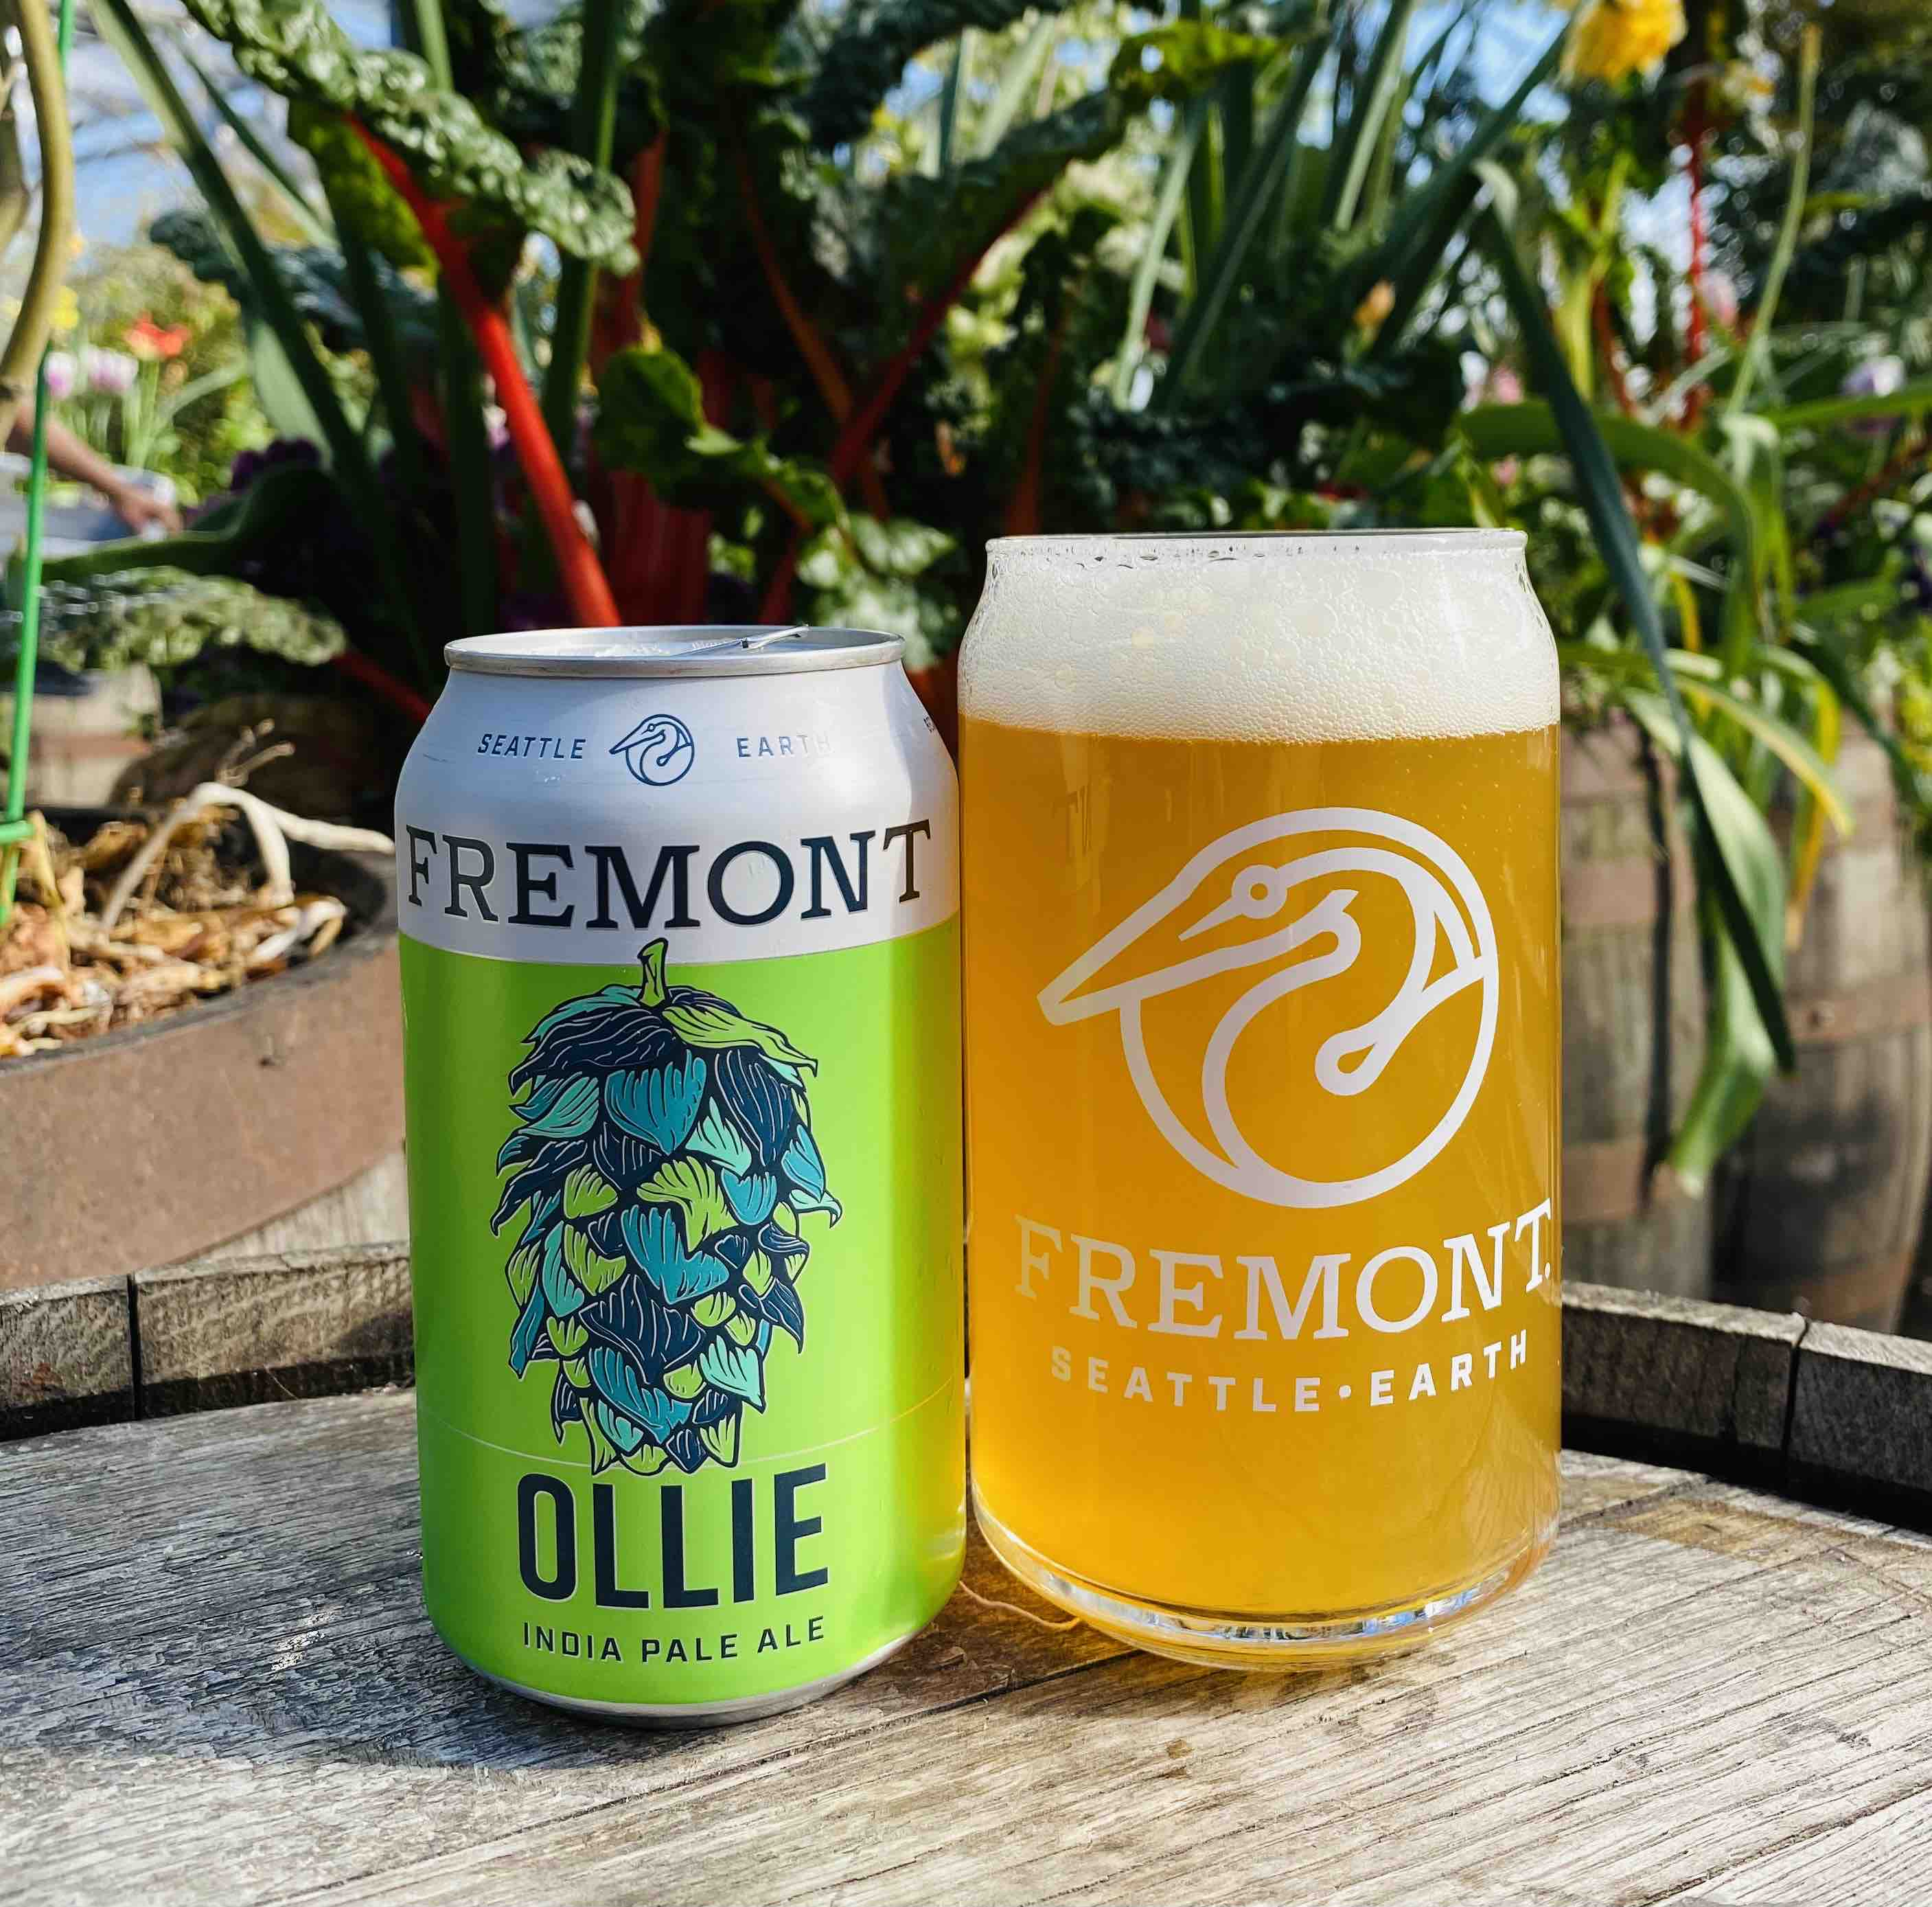 image of Ollie India Pale Ale courtesy of Fremont Brewing